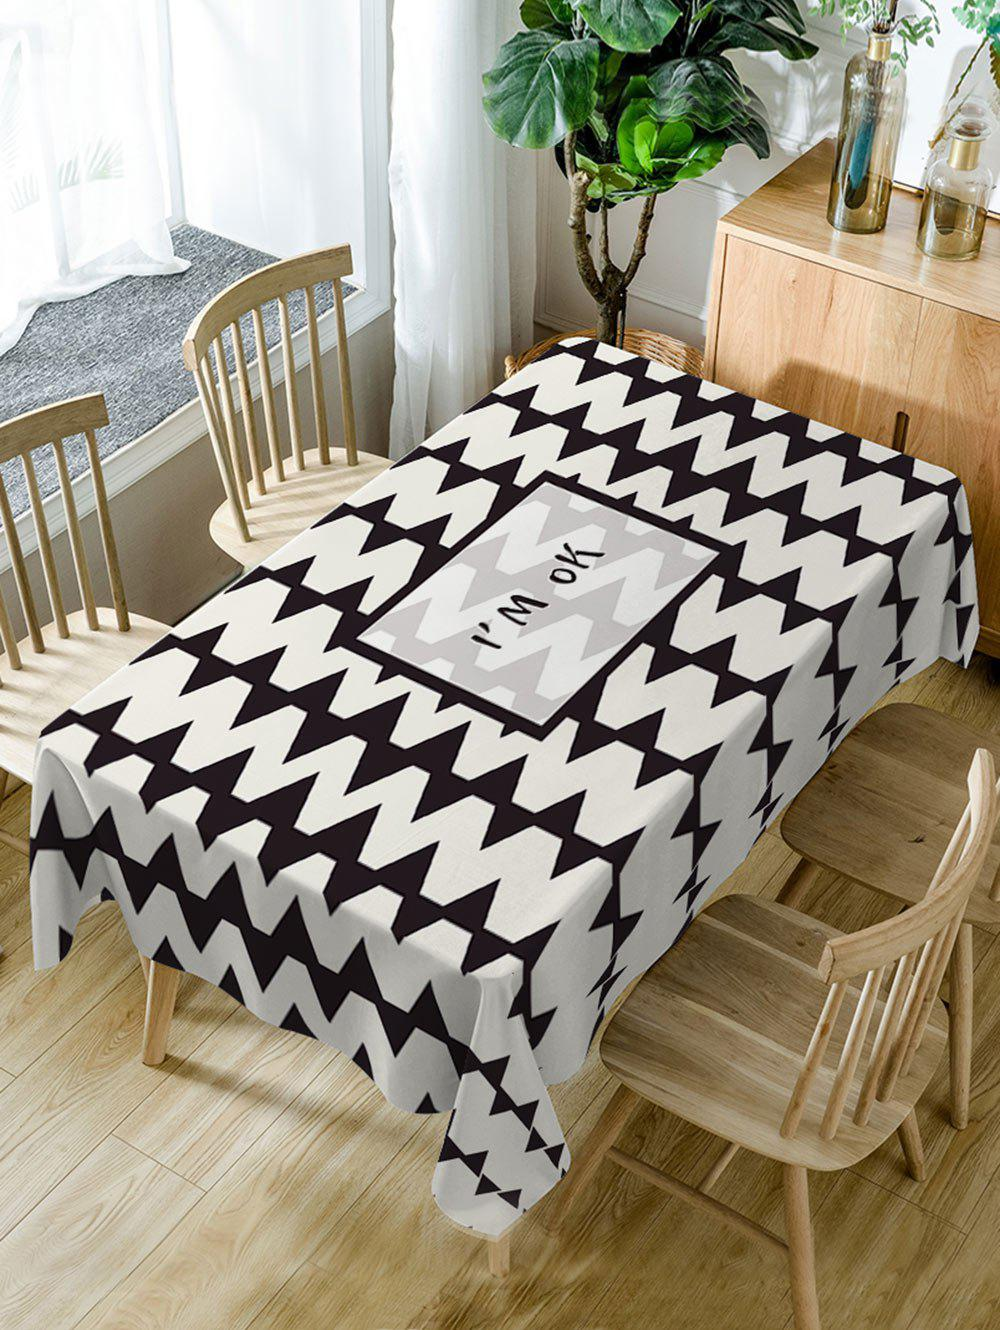 Trendy Zig Zag Pattern Waterproof Dining Table Cloth